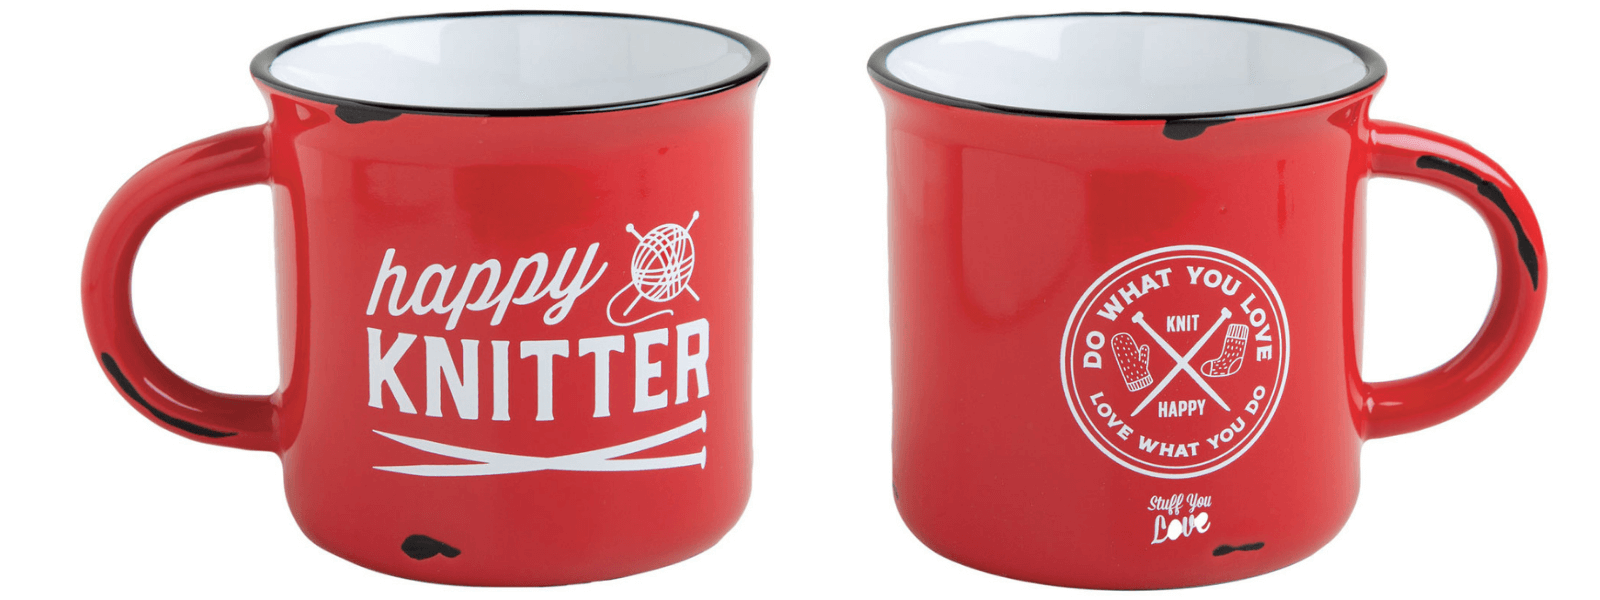 A bright red camping mug with the text Happy knitter on one side and the text do what you love, love what you do on the other side.